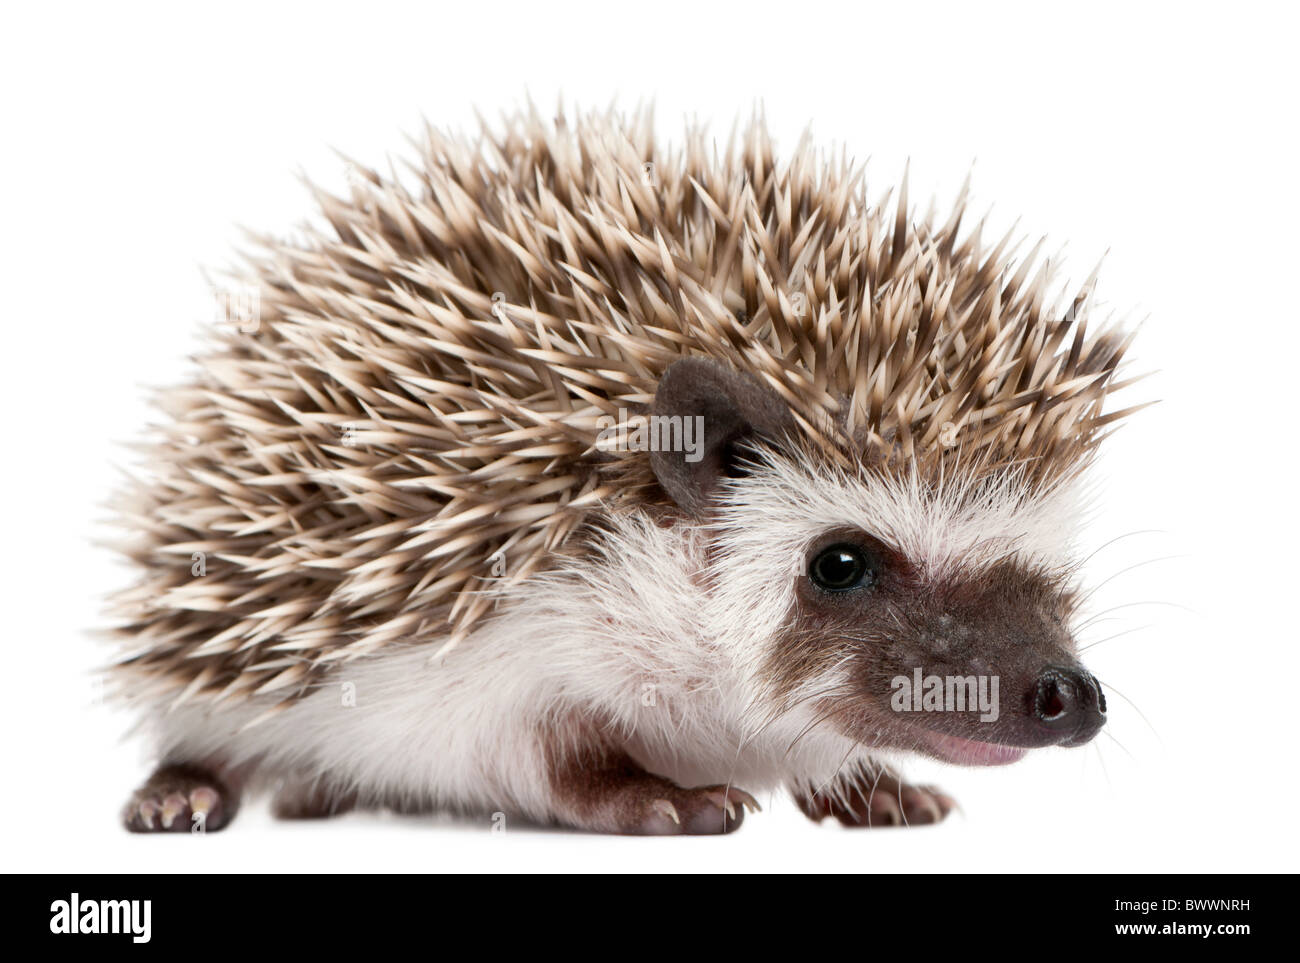 Four-toed Hedgehog, Atelerix albiventris, 3 weeks old, in front of white background Stock Photo